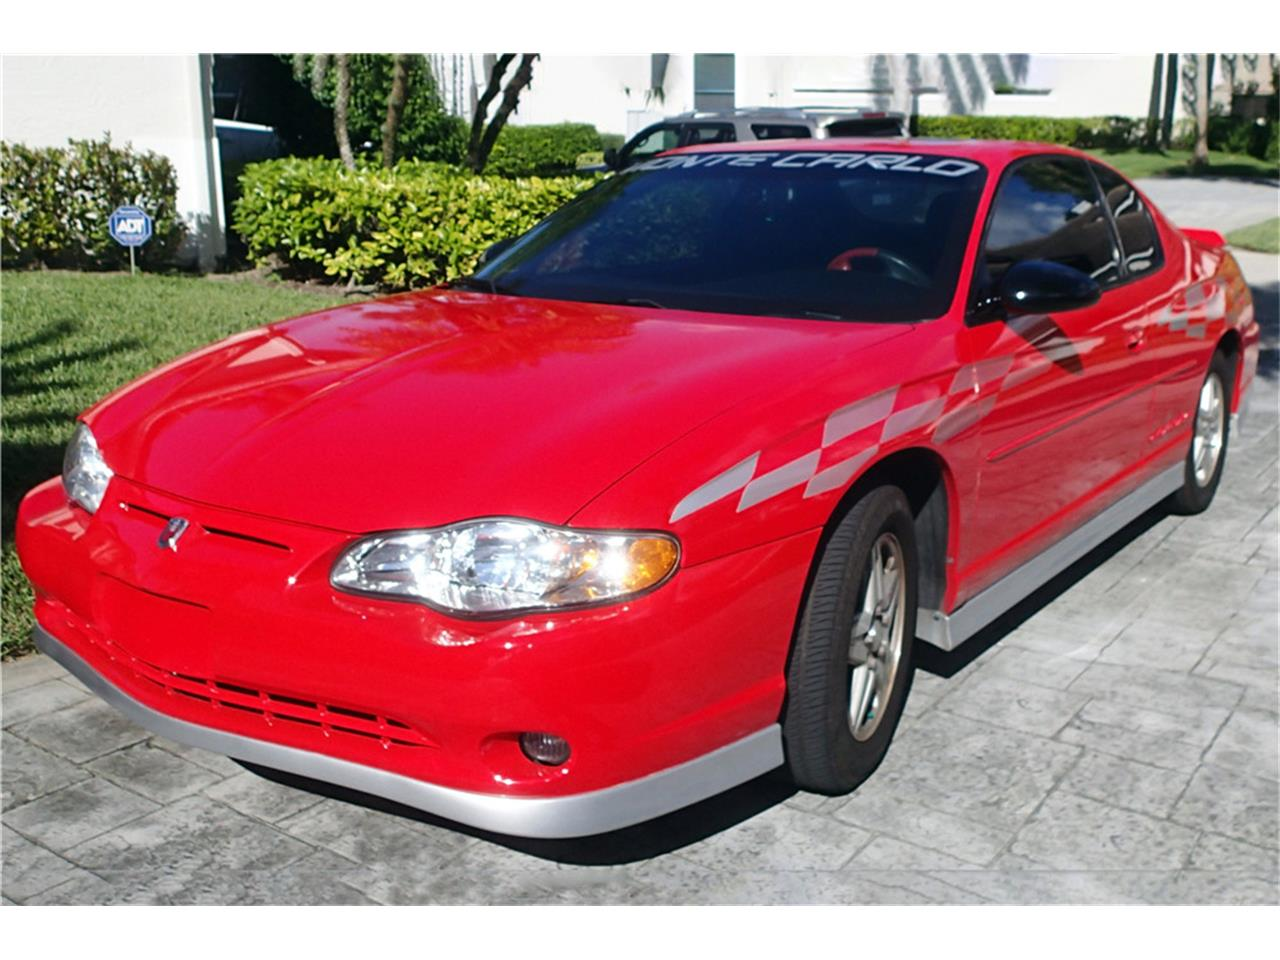 2000 Chevrolet Monte Carlo Ss For Sale